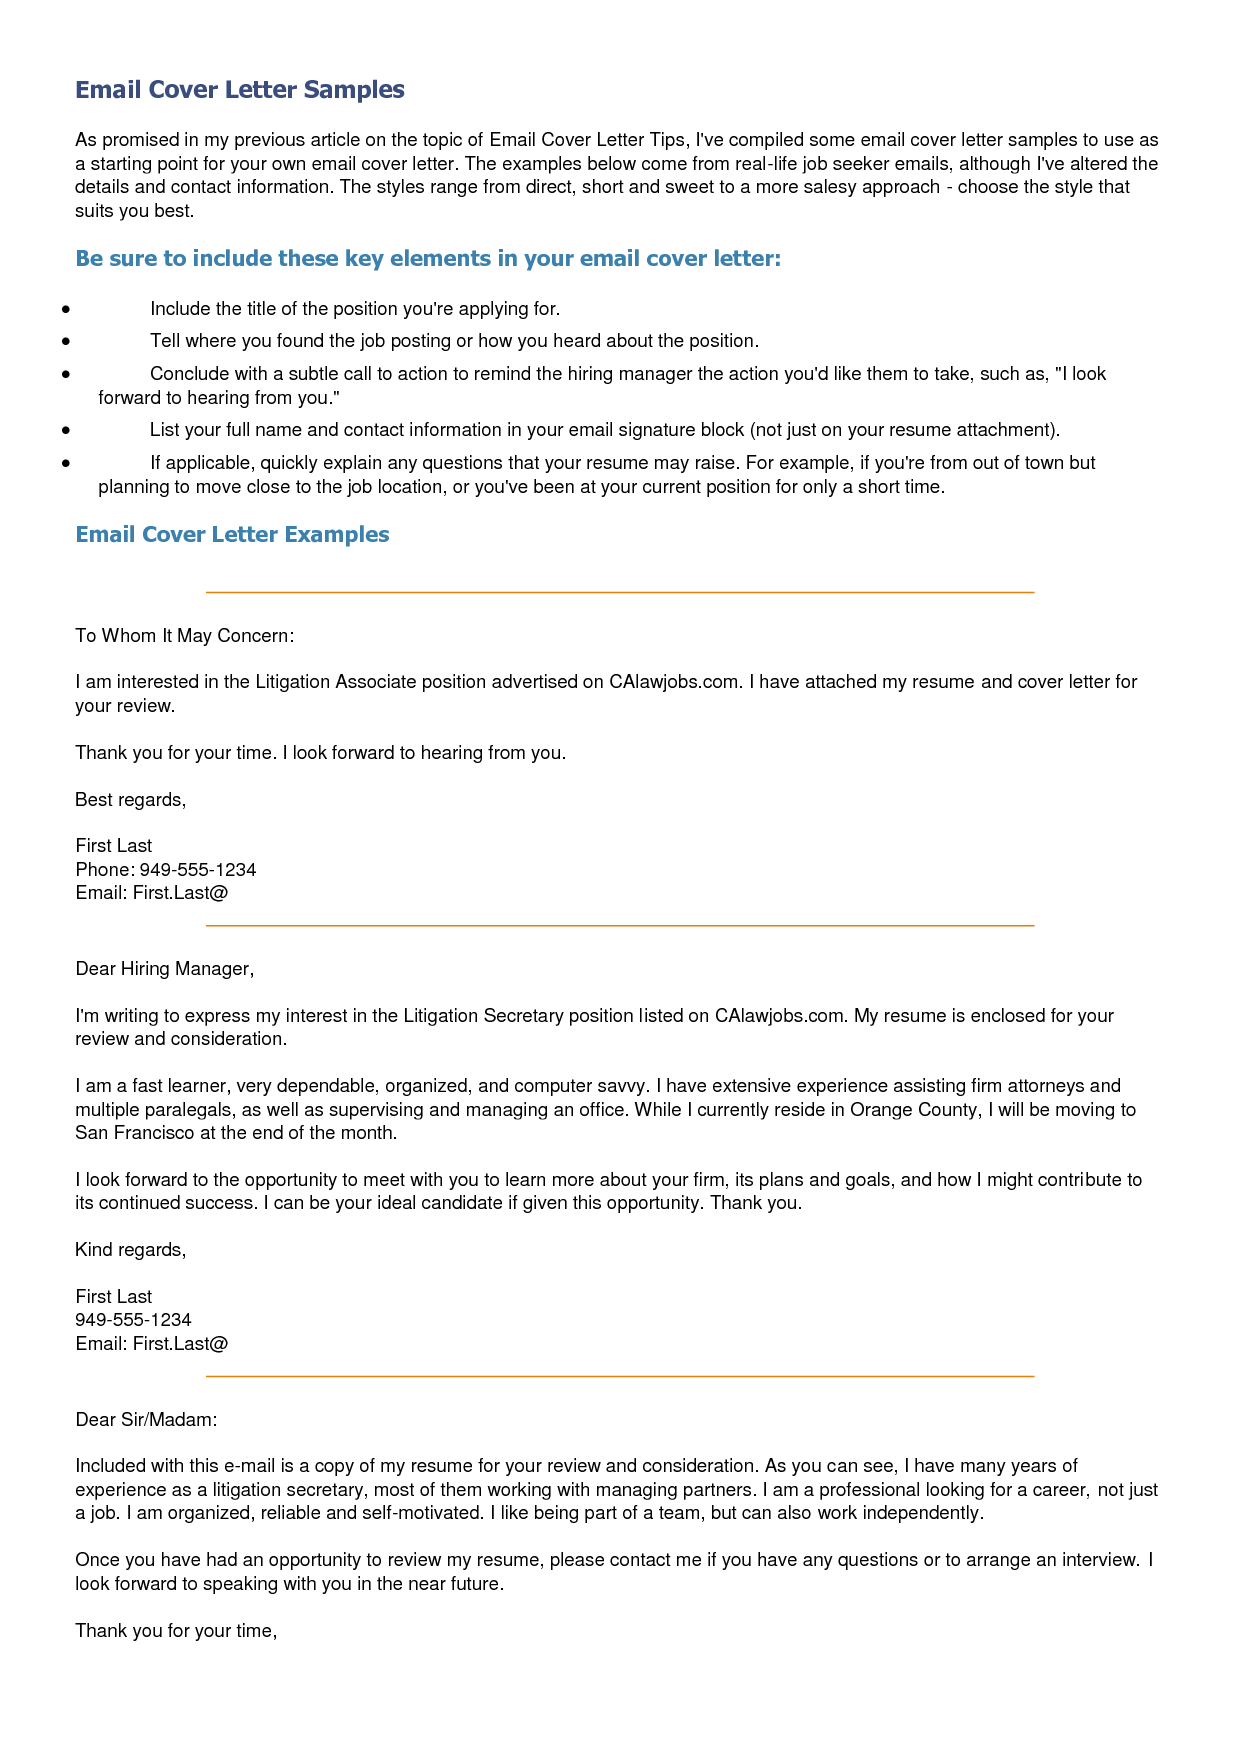 Email Cover Letter Sample Samplesg Business Via Certified Mail Resume  Email With Resume And Cover Letter